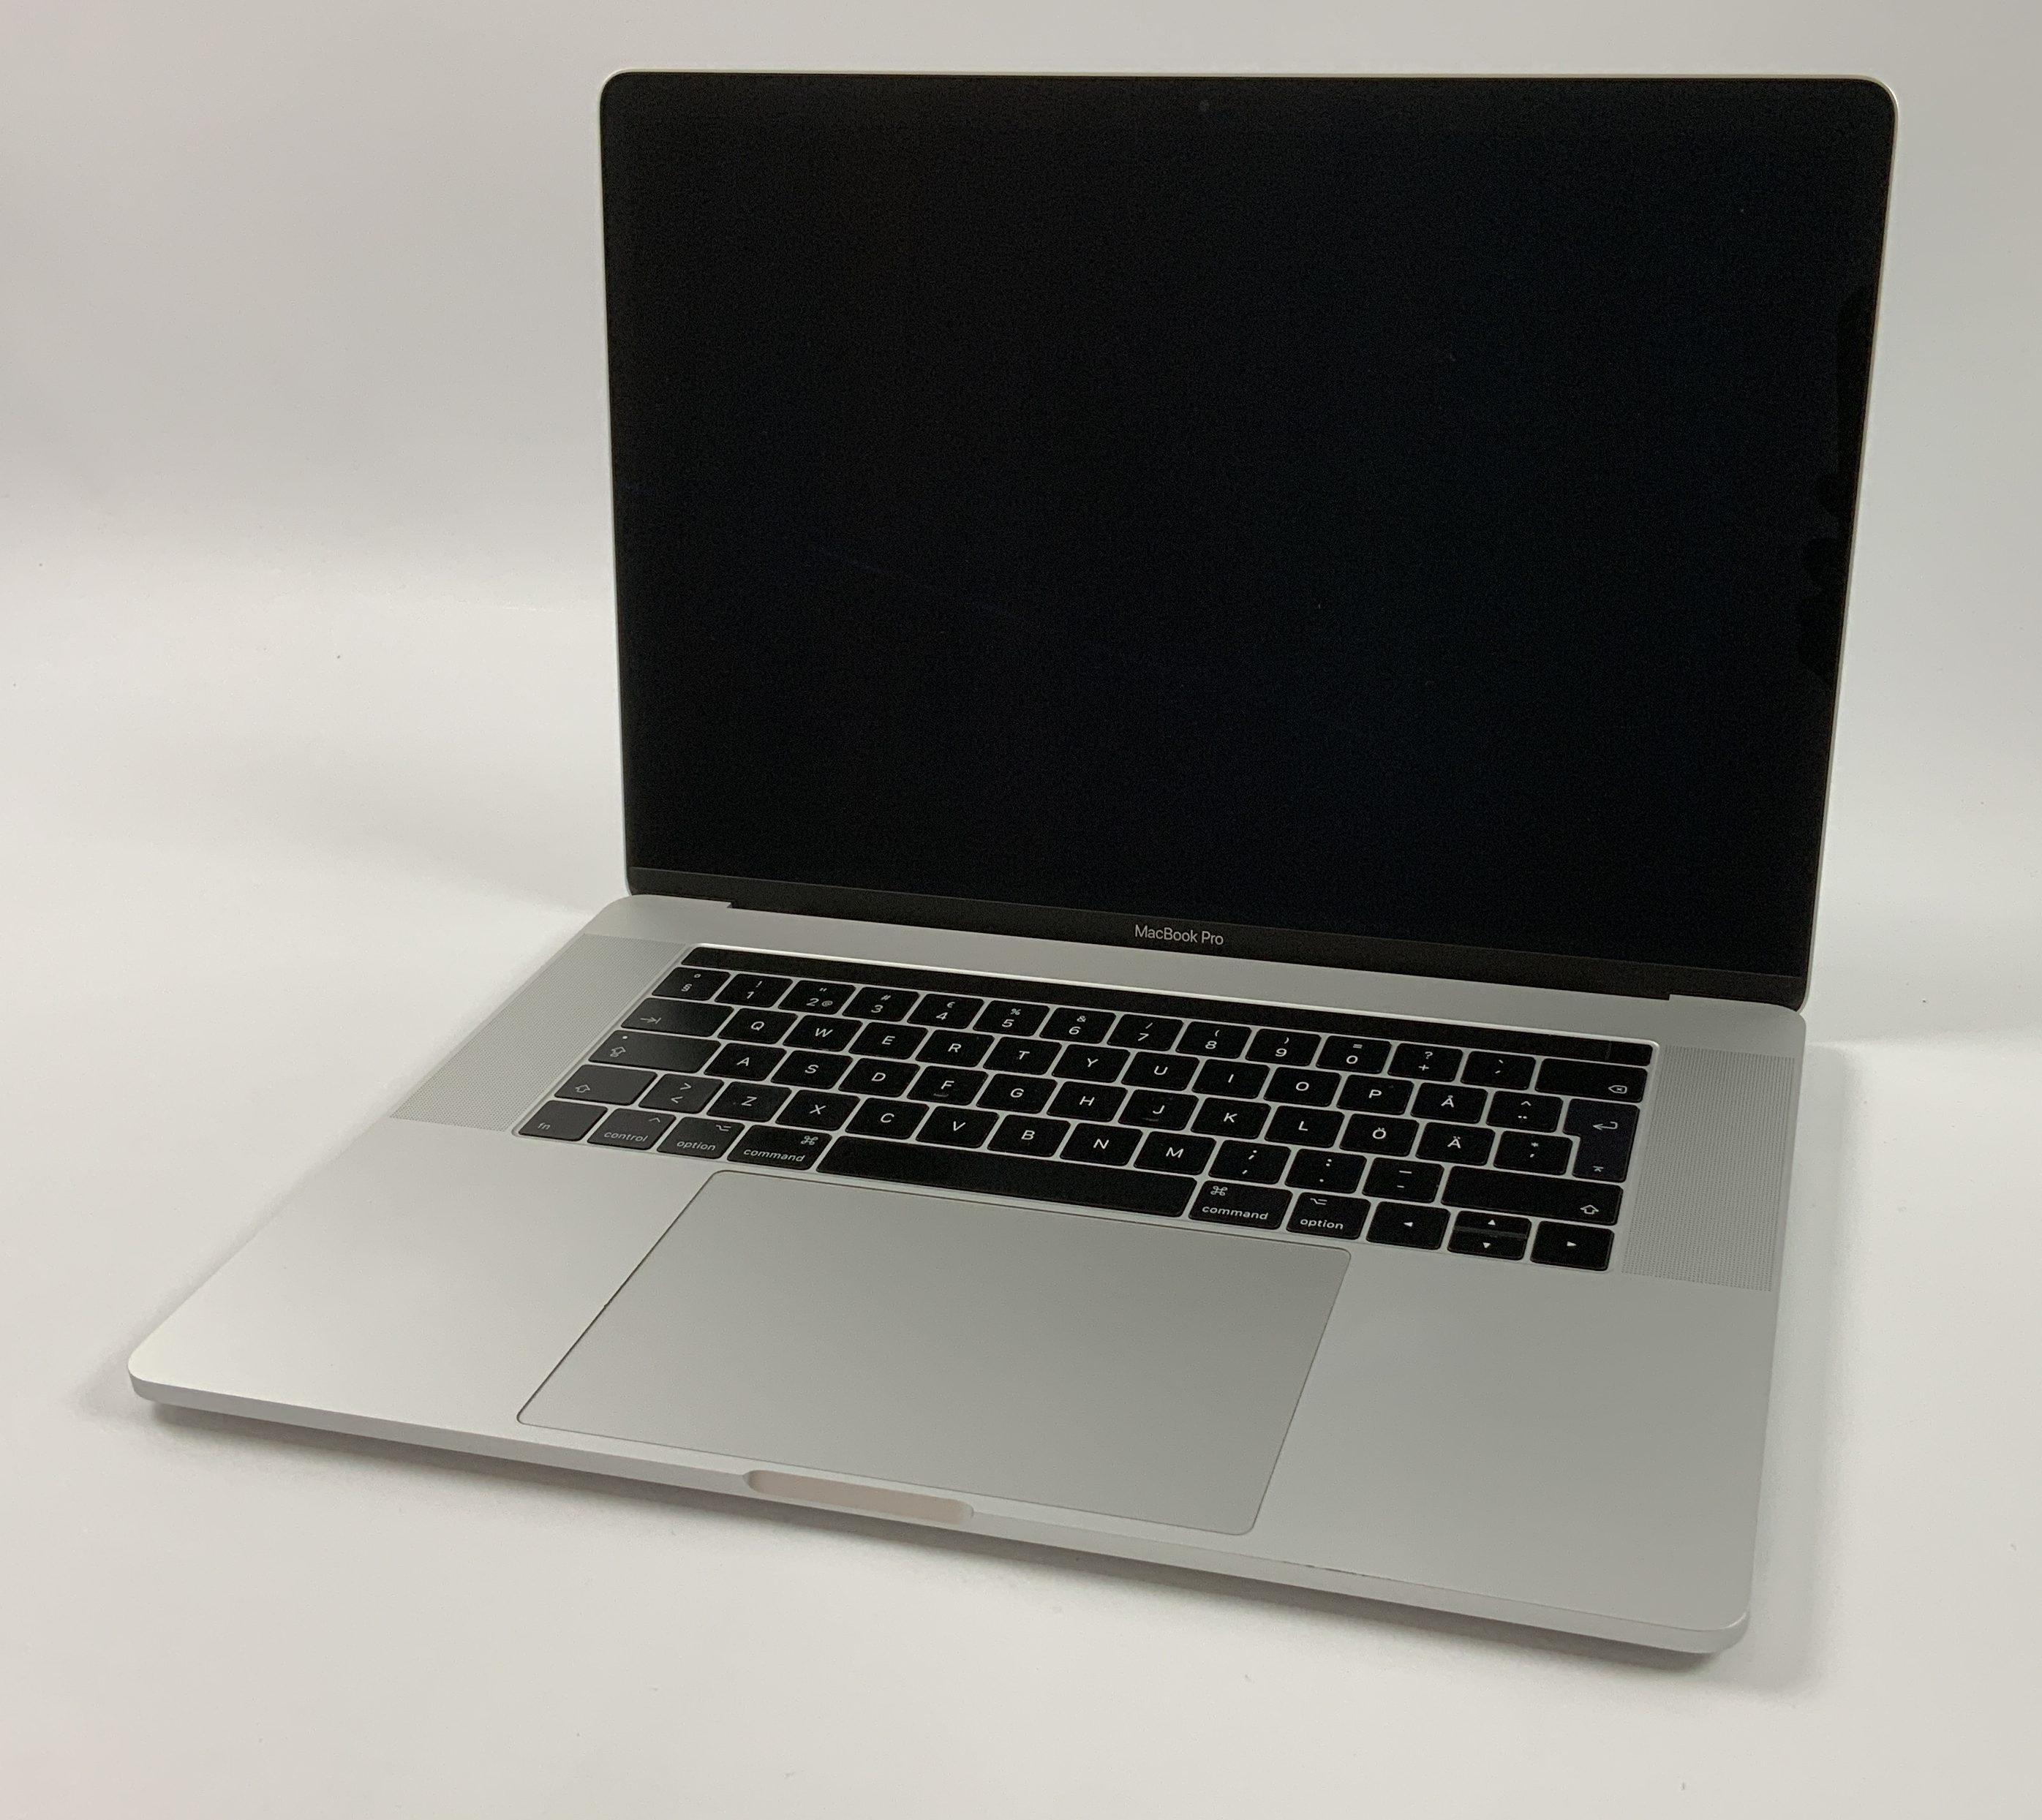 "MacBook Pro 15"" Touch Bar Mid 2017 (Intel Quad-Core i7 2.9 GHz 16 GB RAM 512 GB SSD), Silver, Intel Quad-Core i7 2.9 GHz, 16 GB RAM, 512 GB SSD, Afbeelding 1"